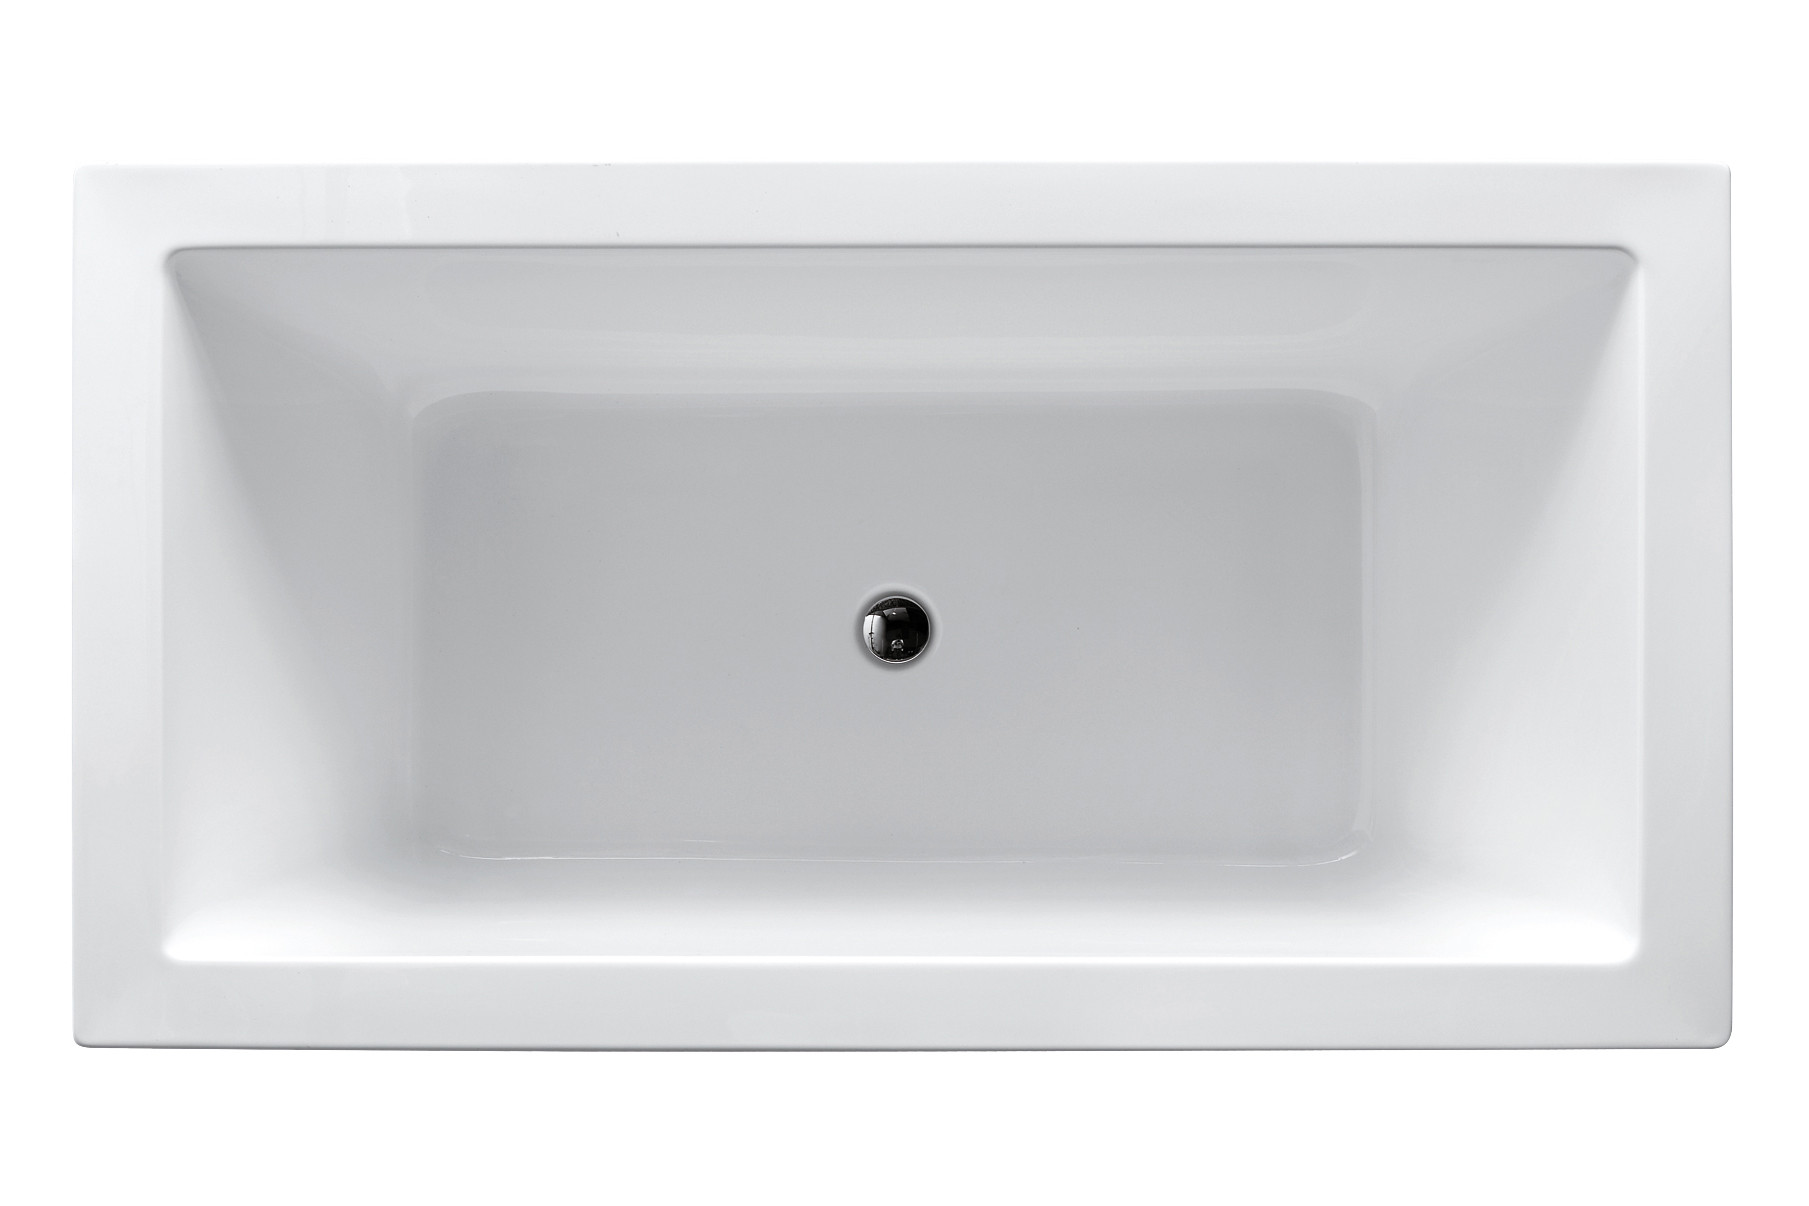 Virtu USA VTU-1367 67-Inch x 27.5-Inch Serenity Freestanding Soaking Tub